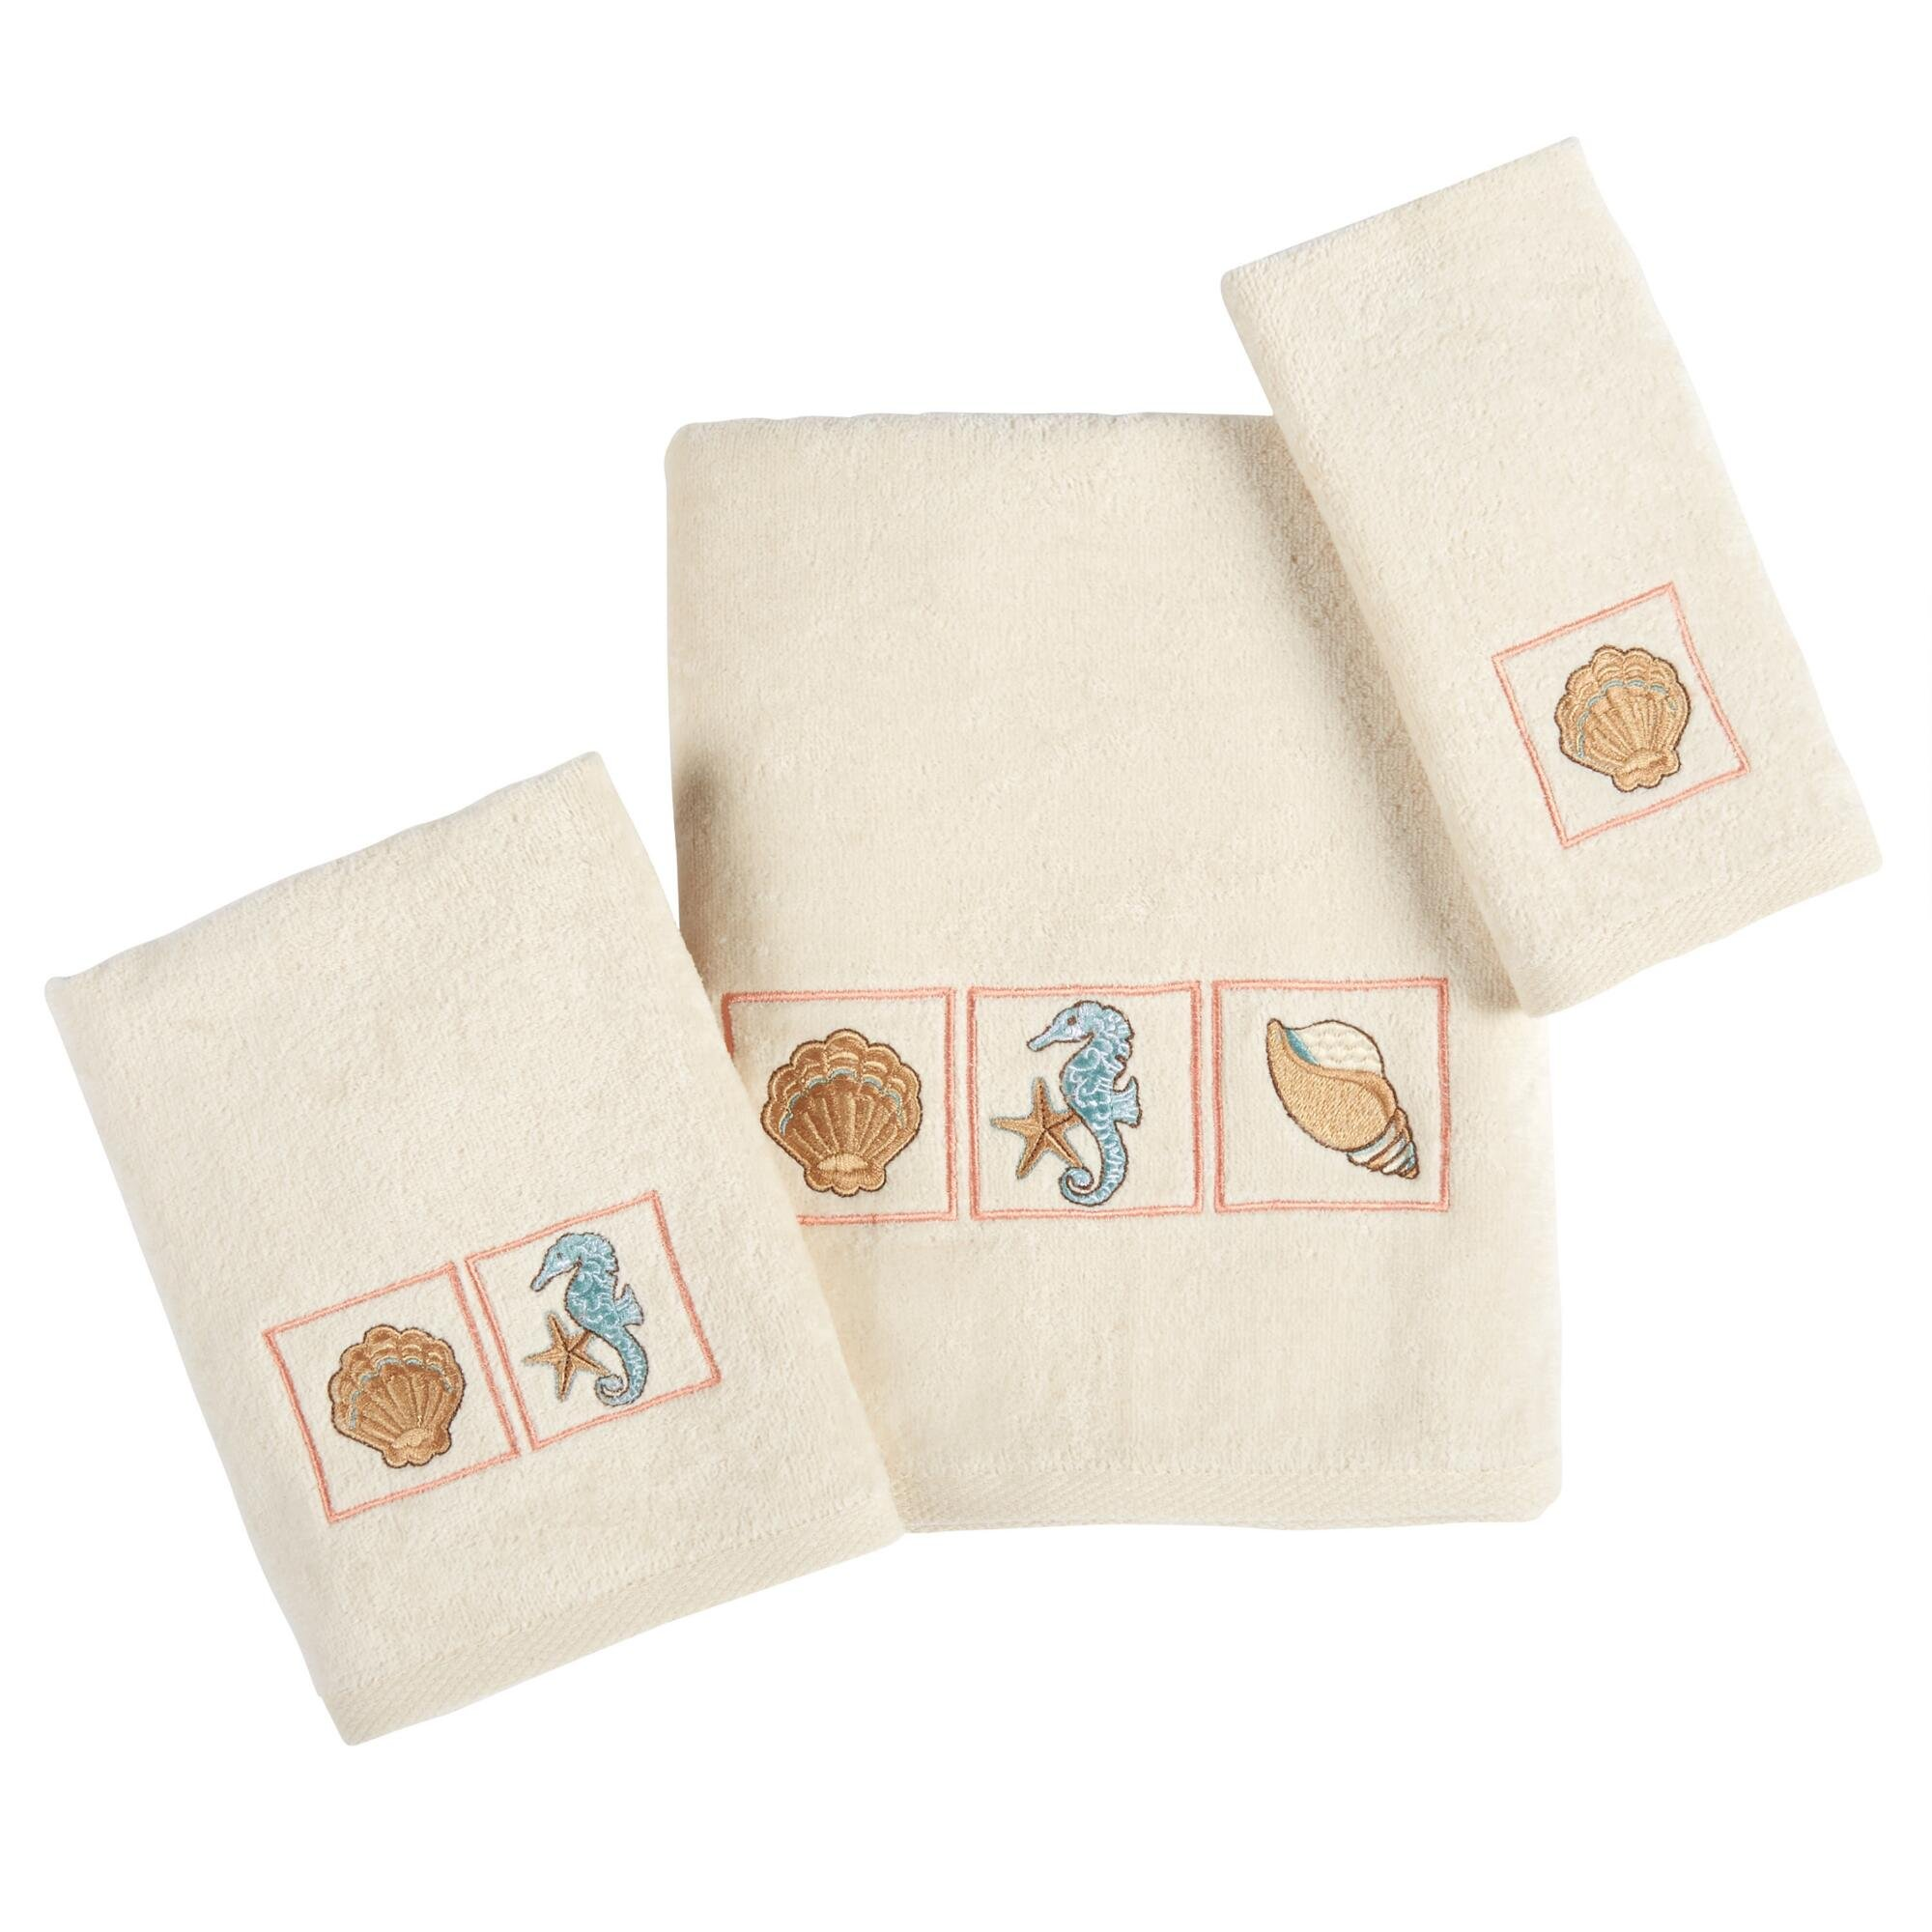 Traditions Cayman Coastal Cotton Embroidered Seashell Bath Towels Collection, Set of 3